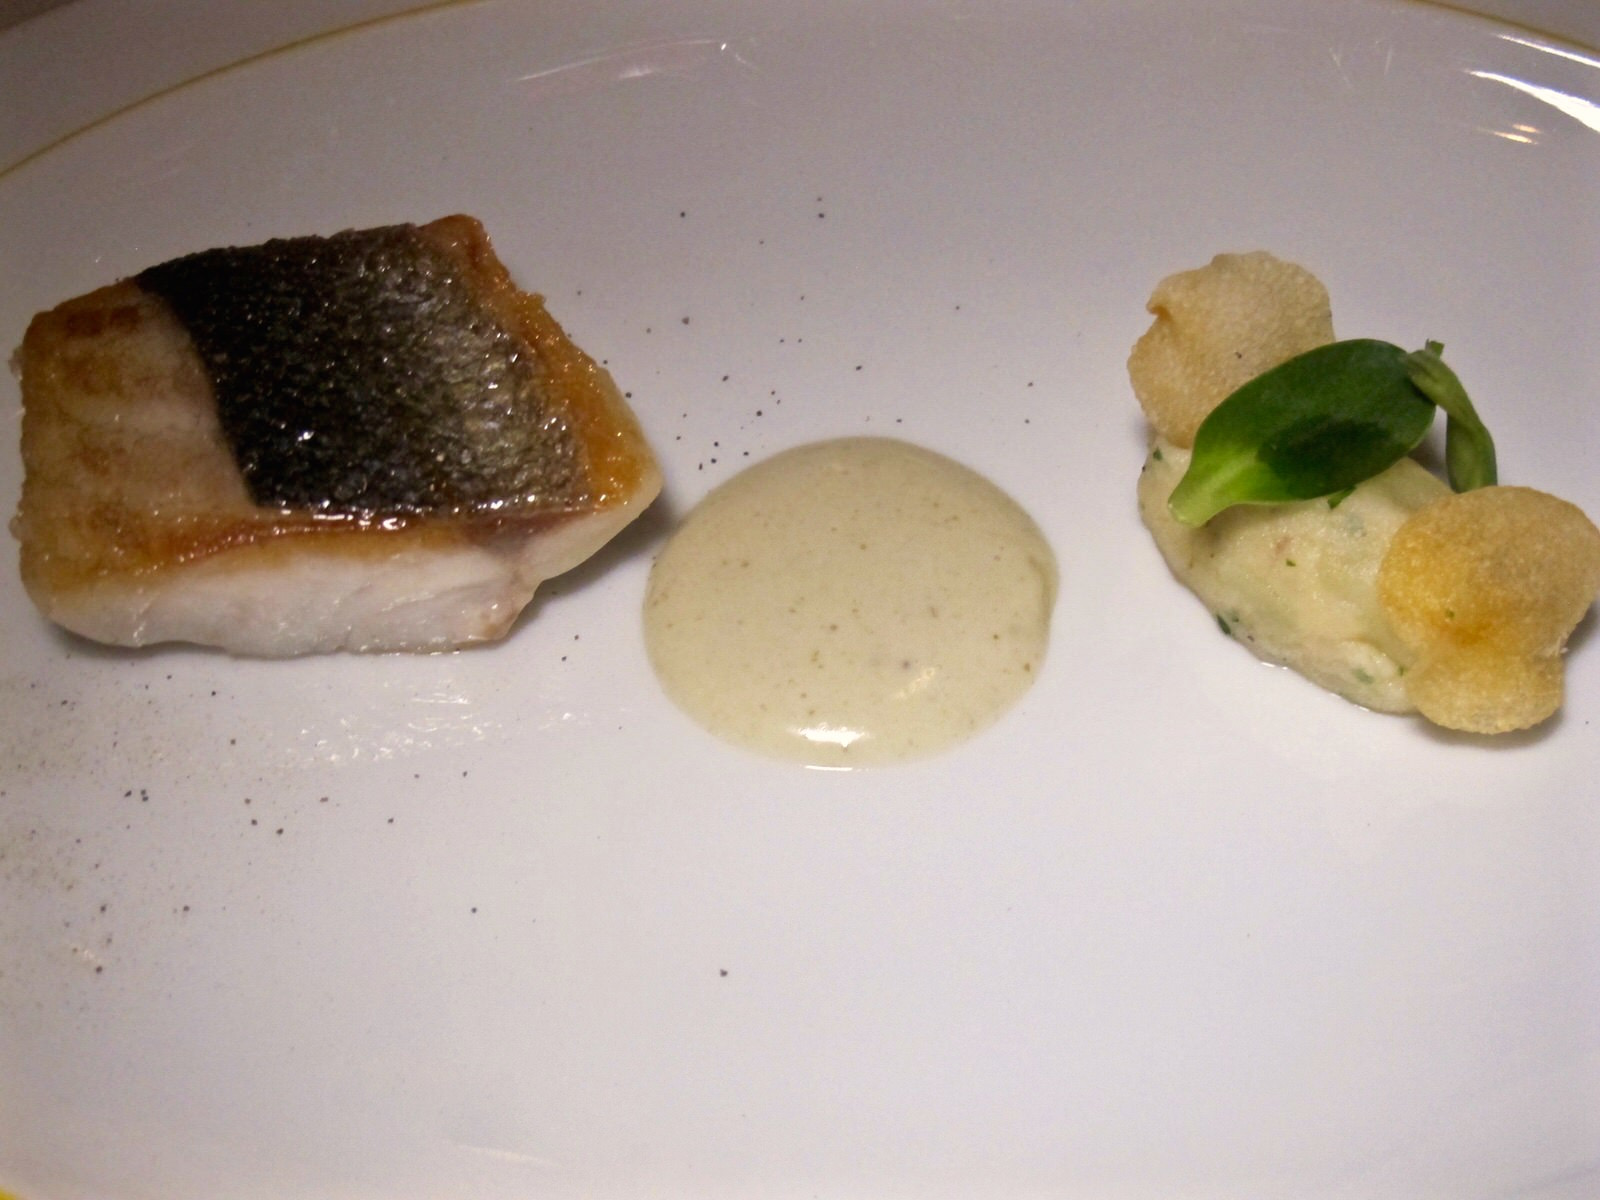 Sauteed fillet of Mediterranean loup de mer, fork crushed la ratte potatoes, garden sunflower sprouts and Spanish caper emulsion